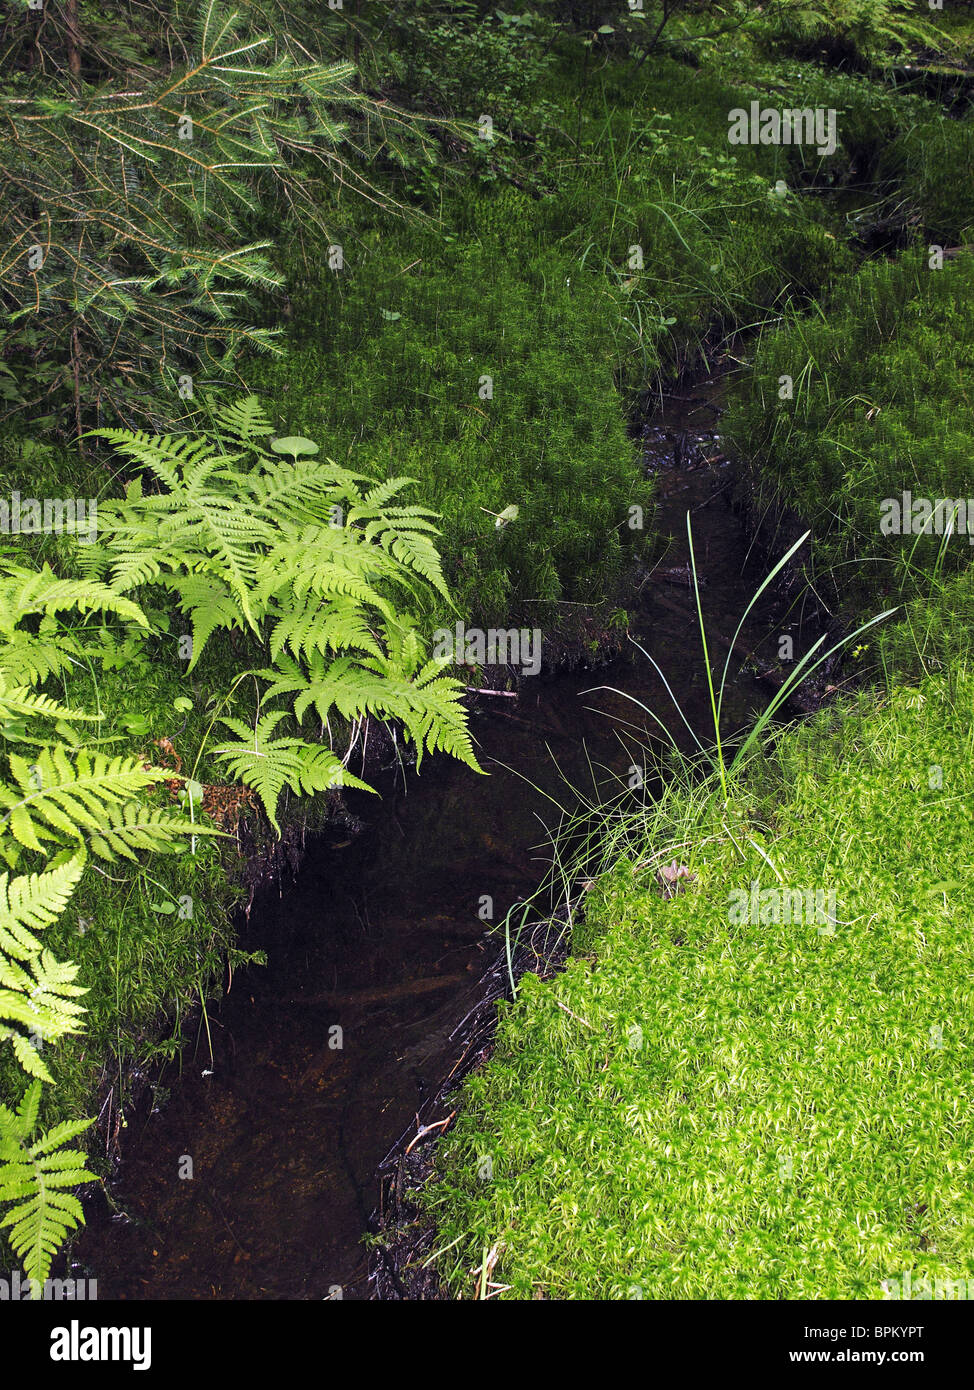 Swampy woods close up. A small stream cuts the way trough lush moss and fern. - Stock Image